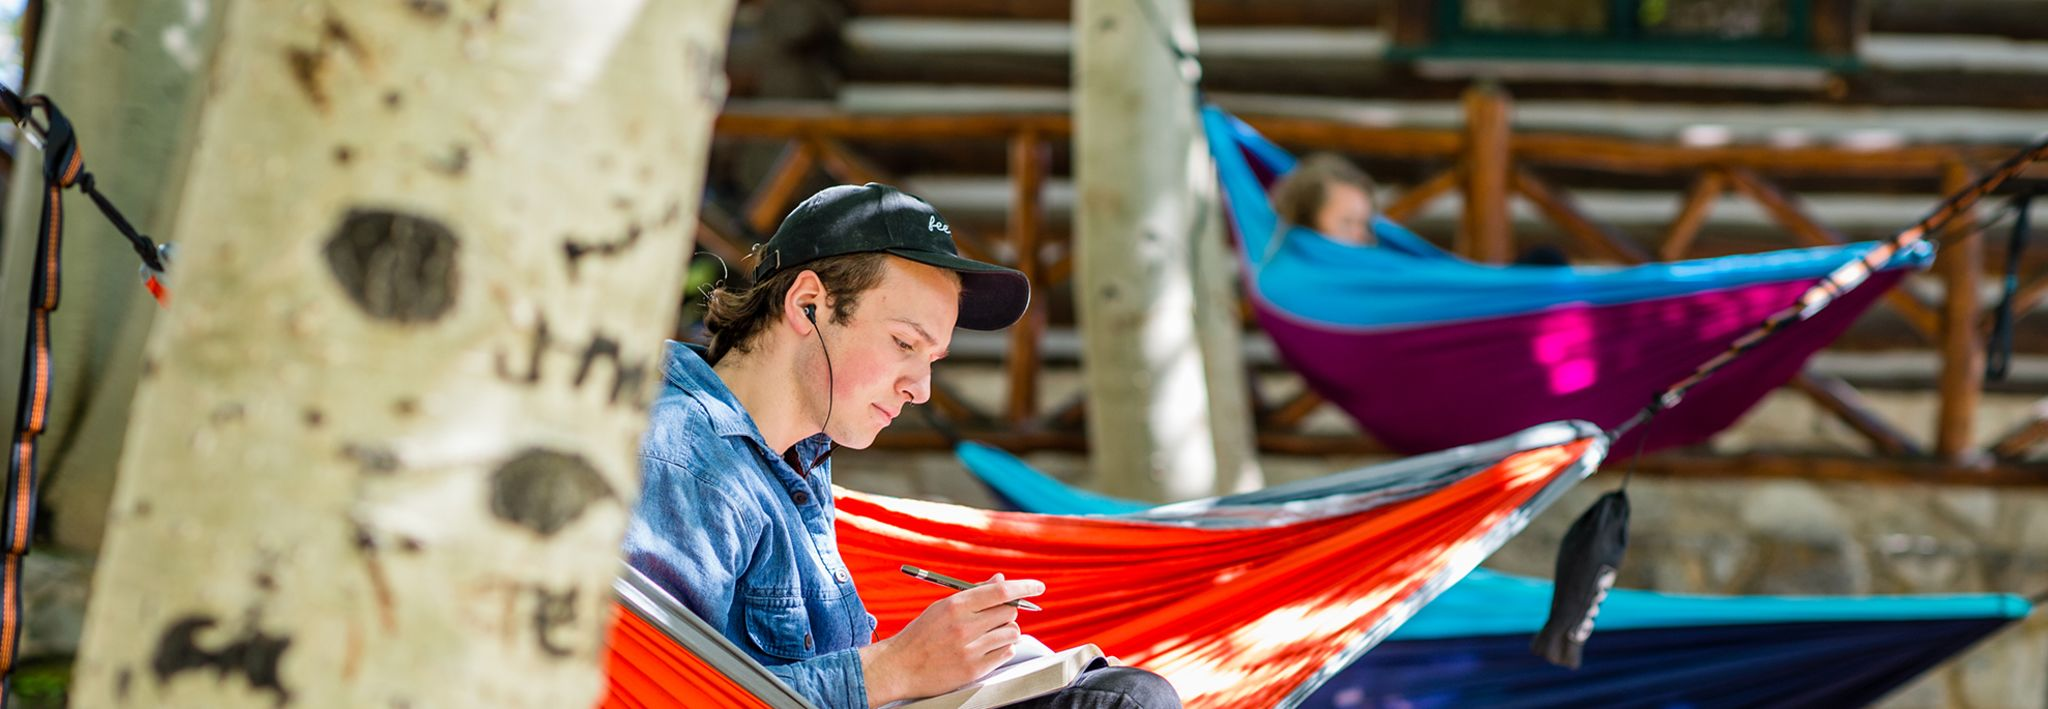 CCU student doing homework in a hammock on a nice, sunny day.